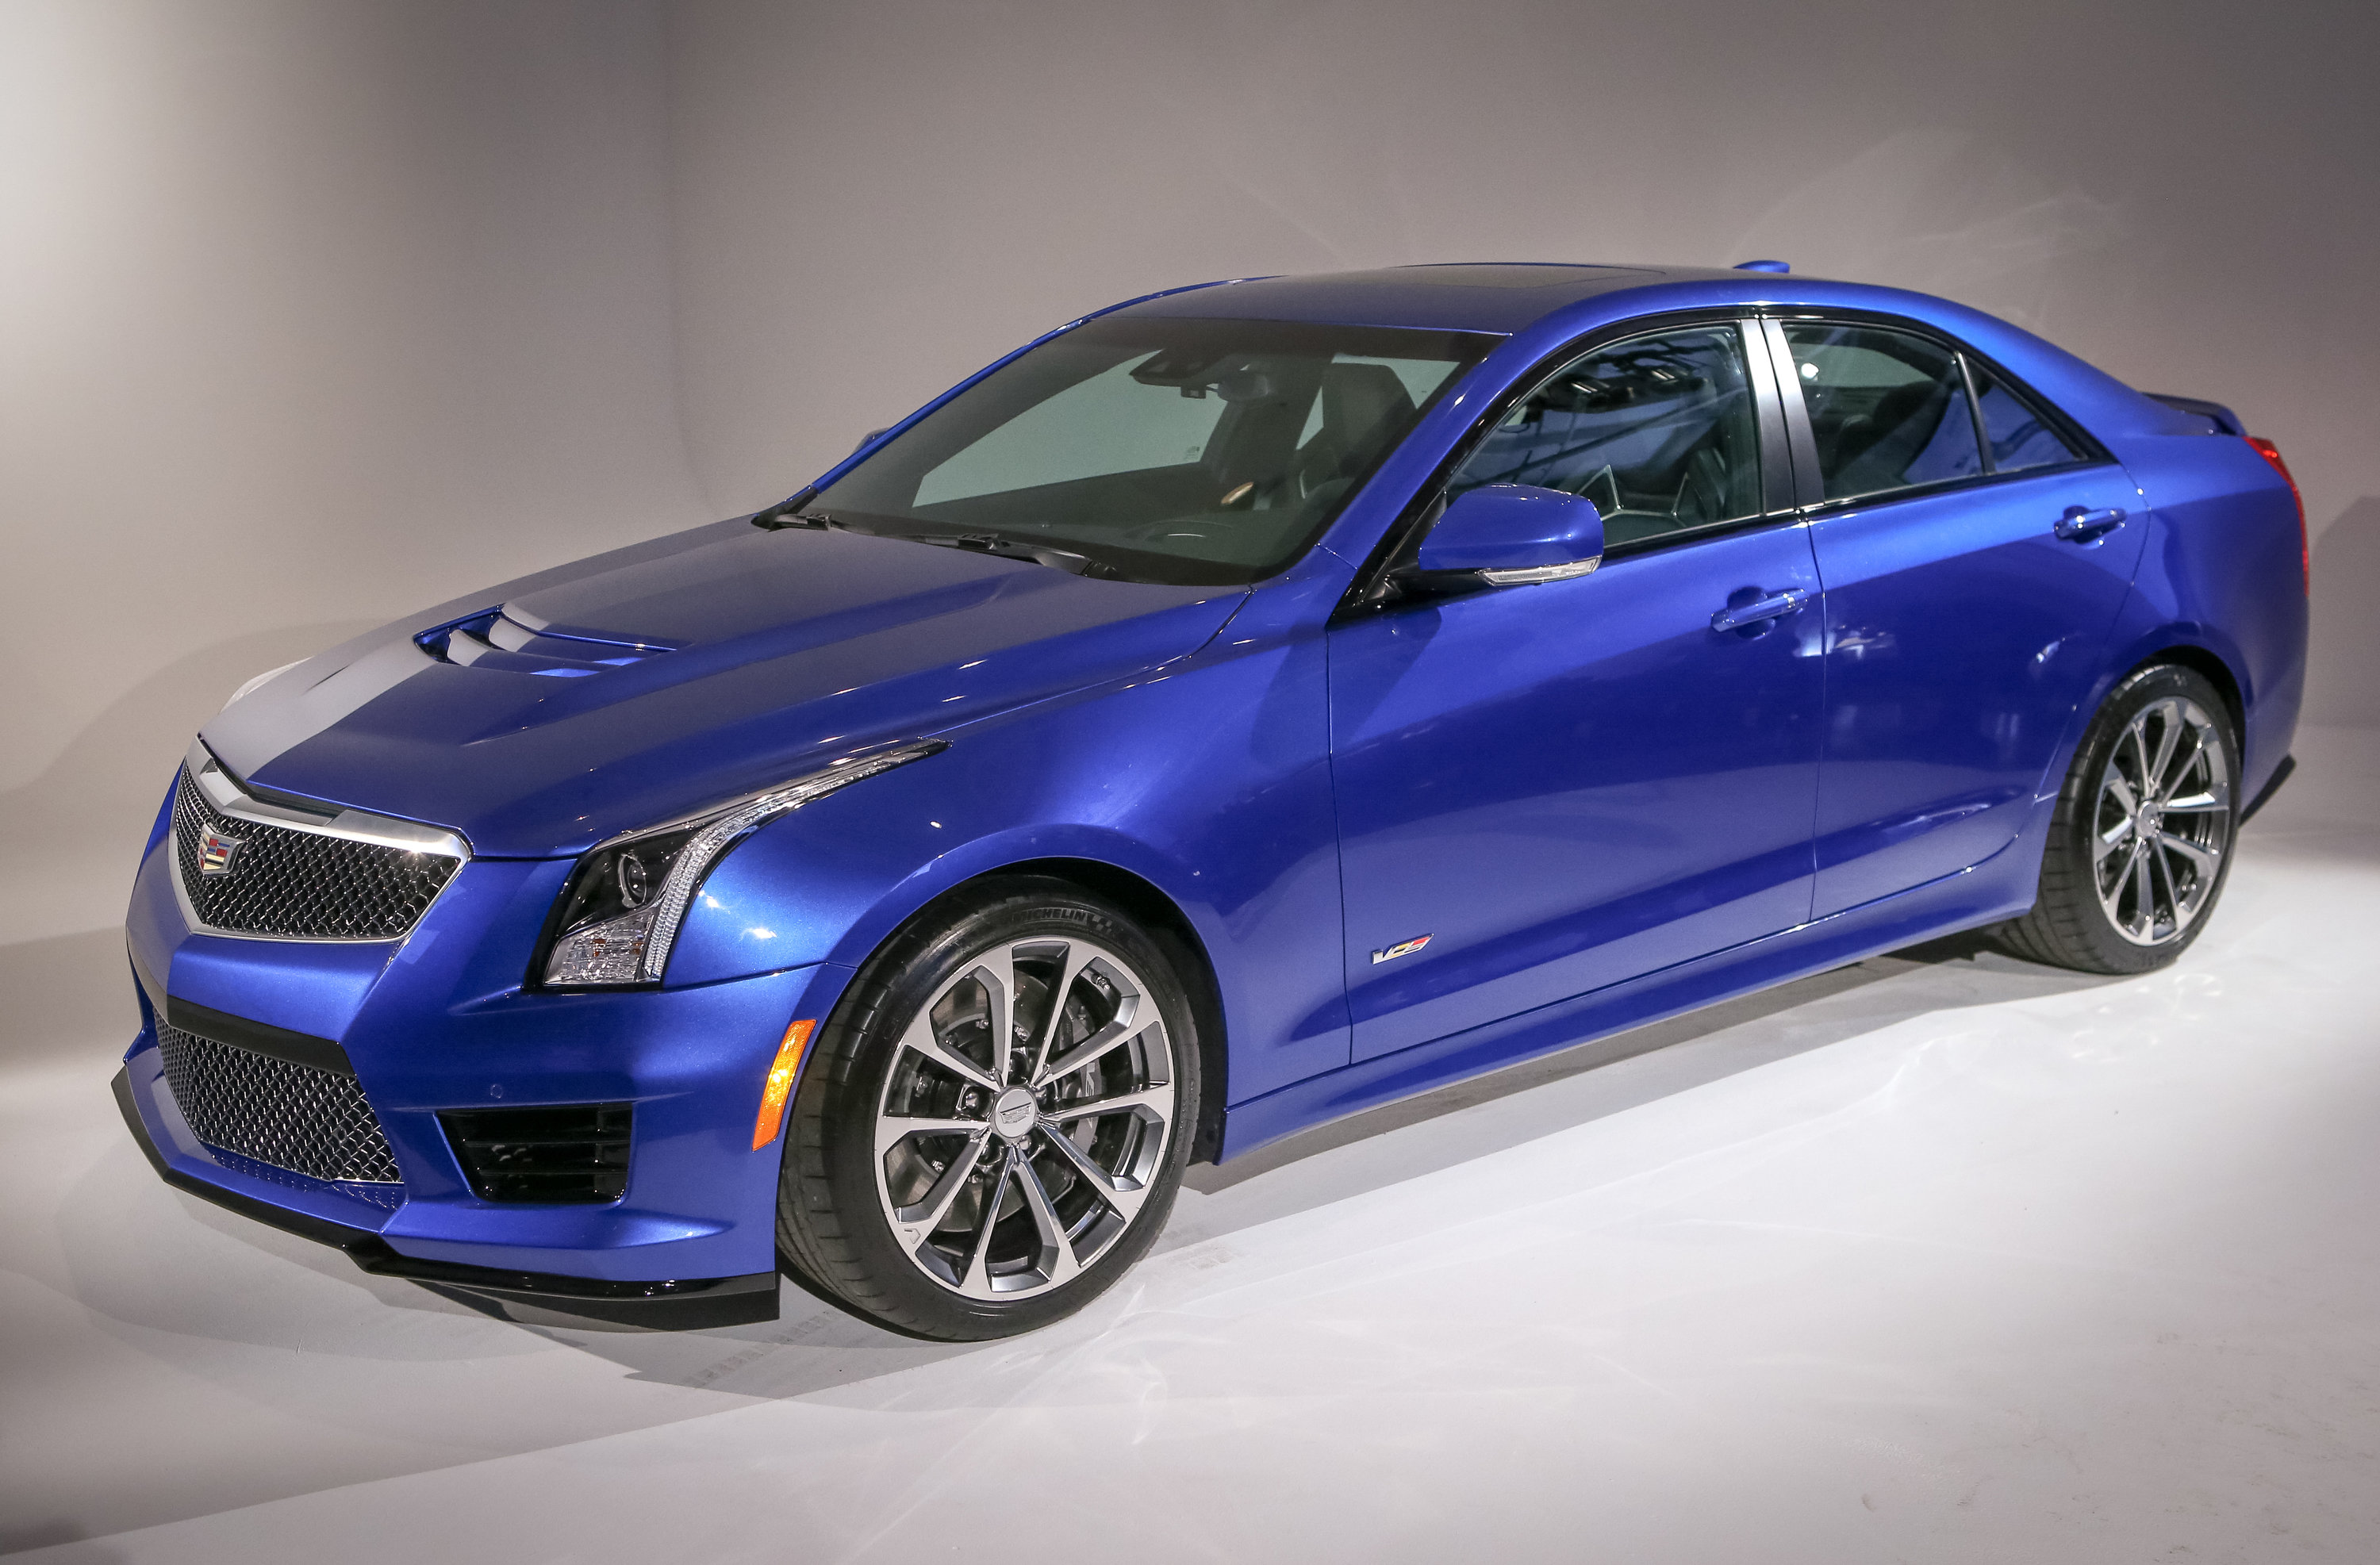 sedan liter xts cts door ats escala news cadillac will replace concept turbo twin autoevolution engine with